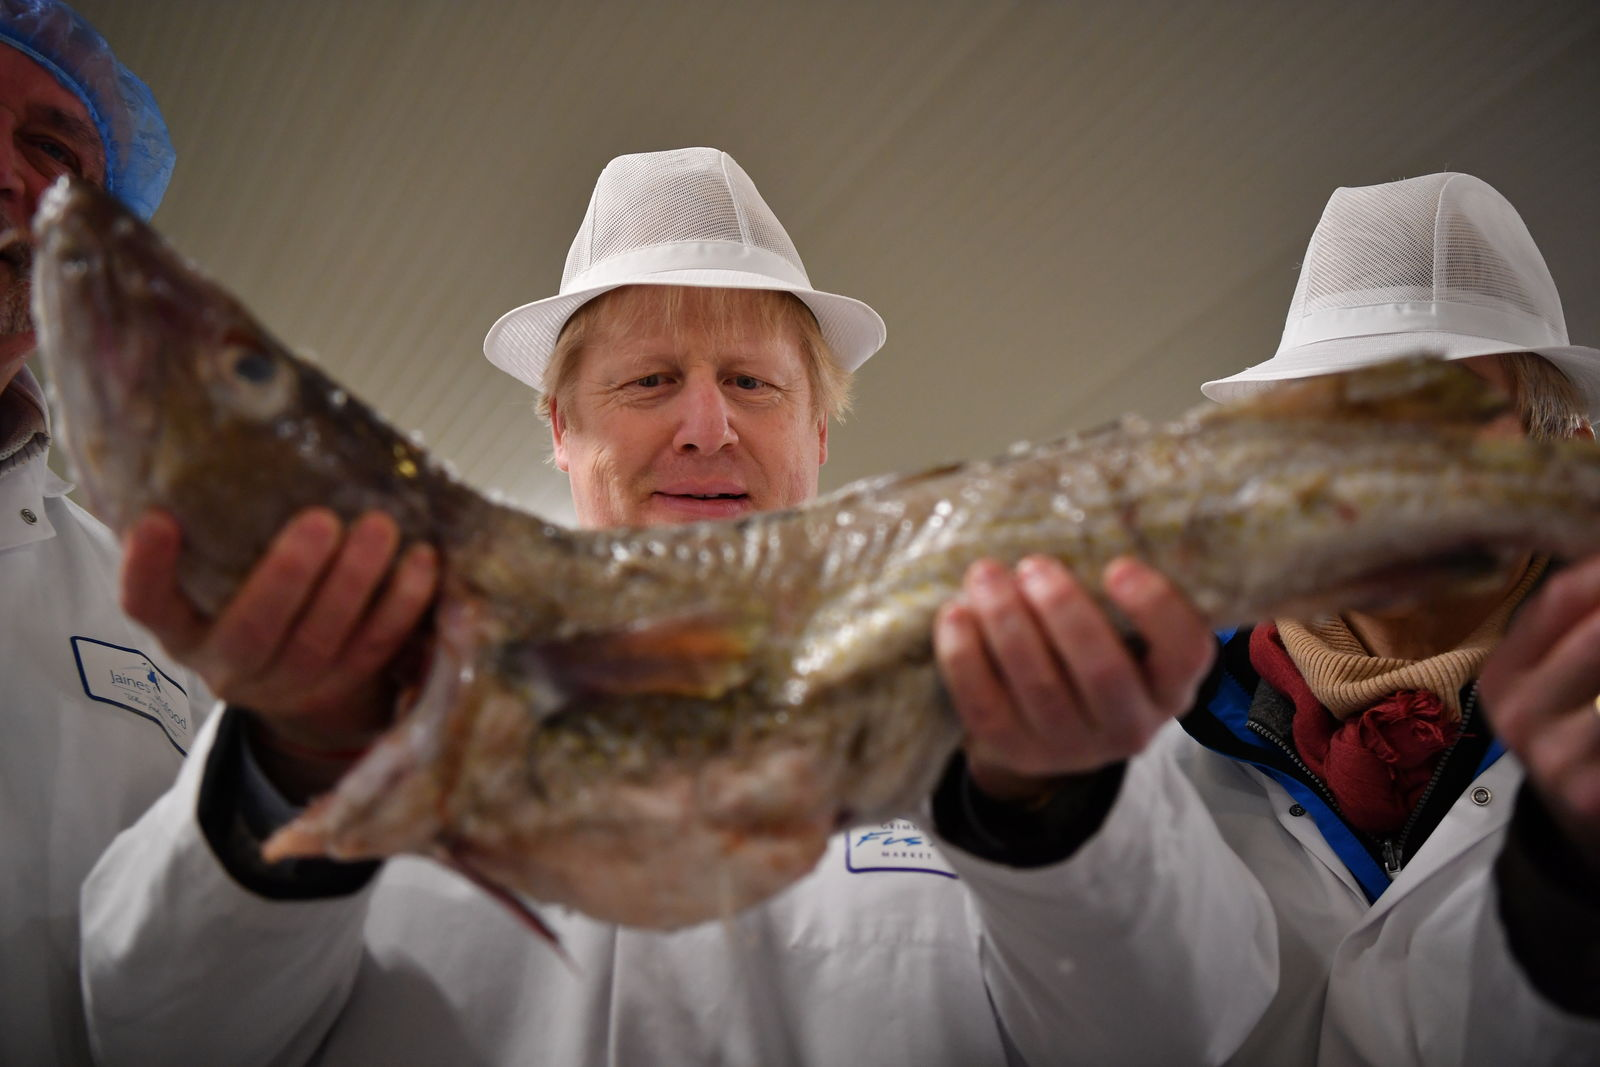 Britain's Prime Minister and Conservative Party leader Boris Johnson visits Grimsby fish market in Grimsby, northeast England, Monday Dec. 9, 2019, ahead of the general election on Dec. 12. (Ben Stansall/Pool via AP)